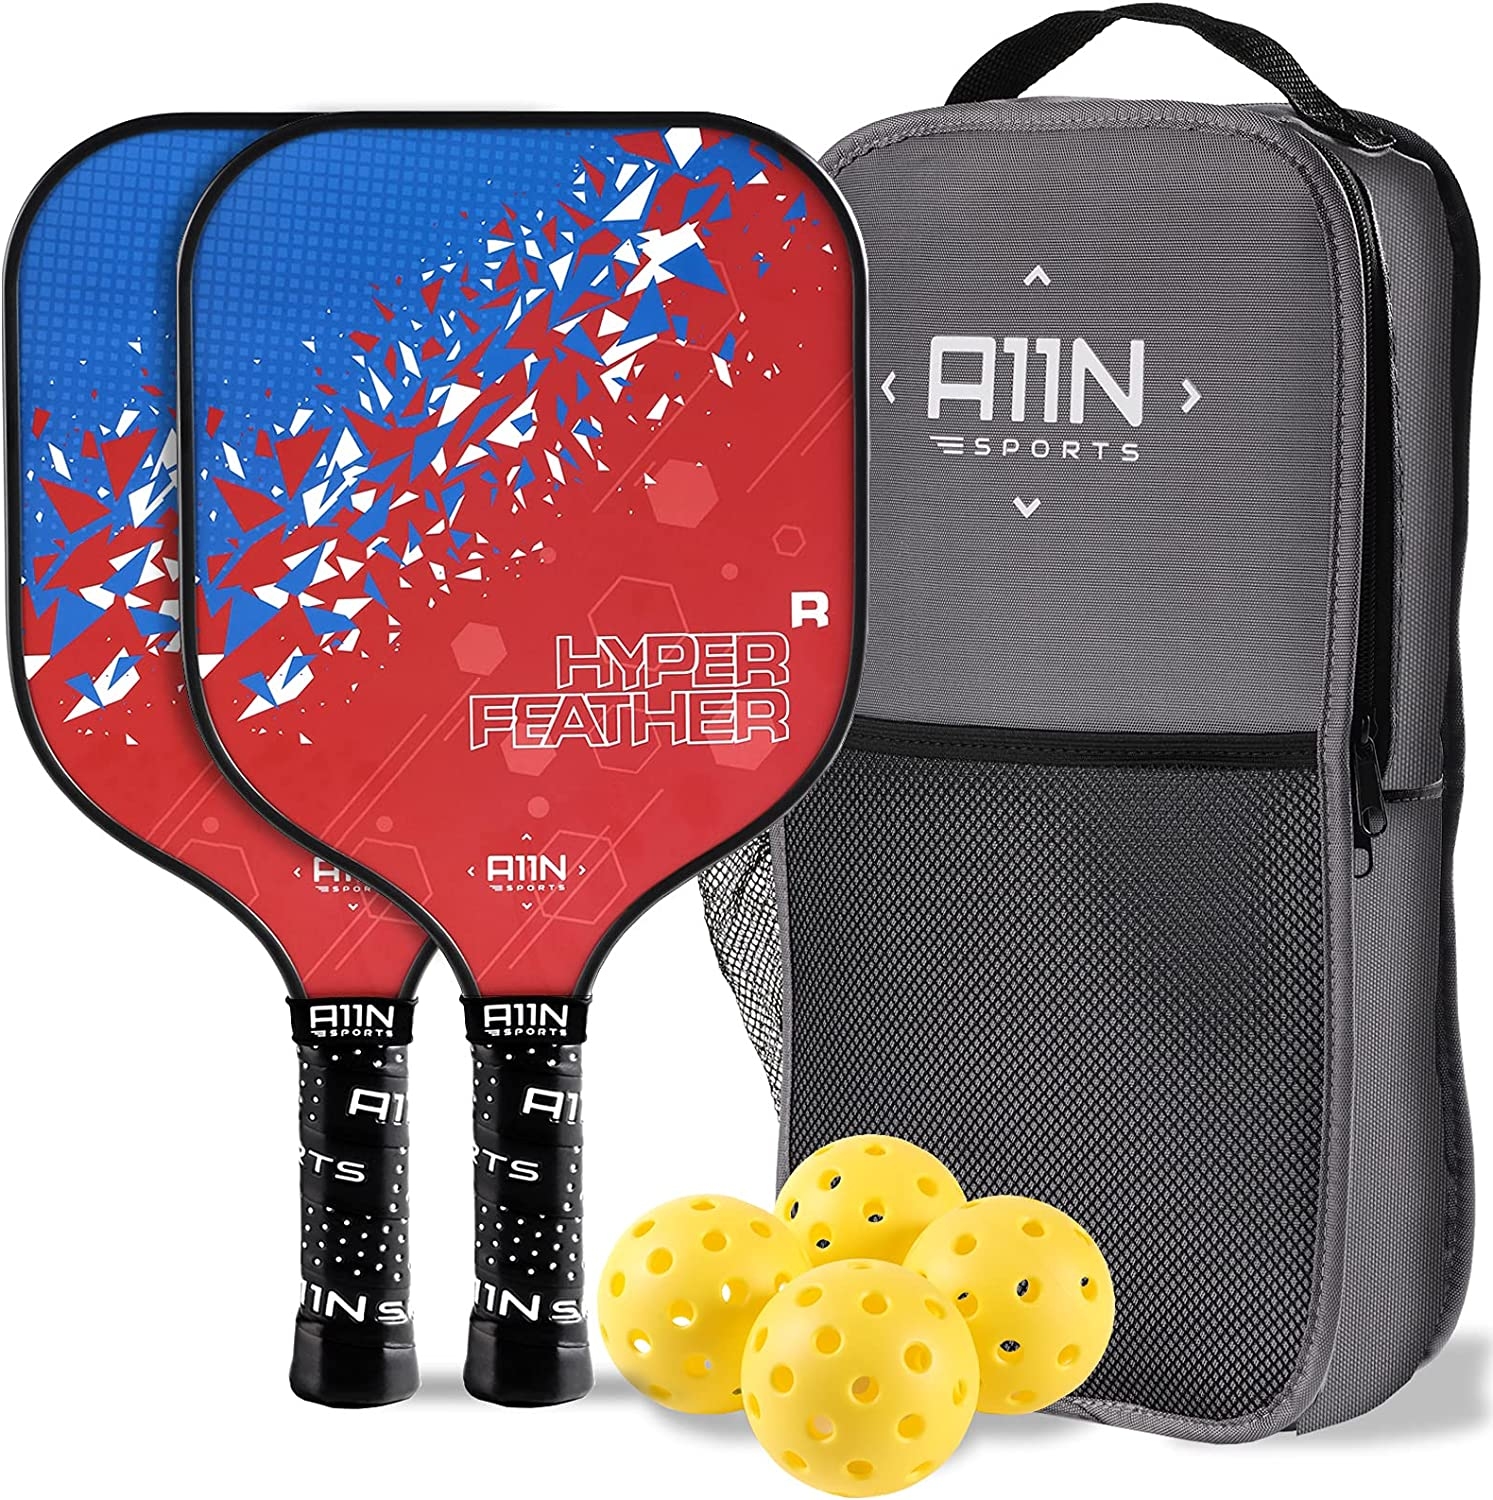 A11N HyperFeather R Pickleball Paddles Set with of Super beauty product Max 58% OFF restock quality top Rackets 2 4